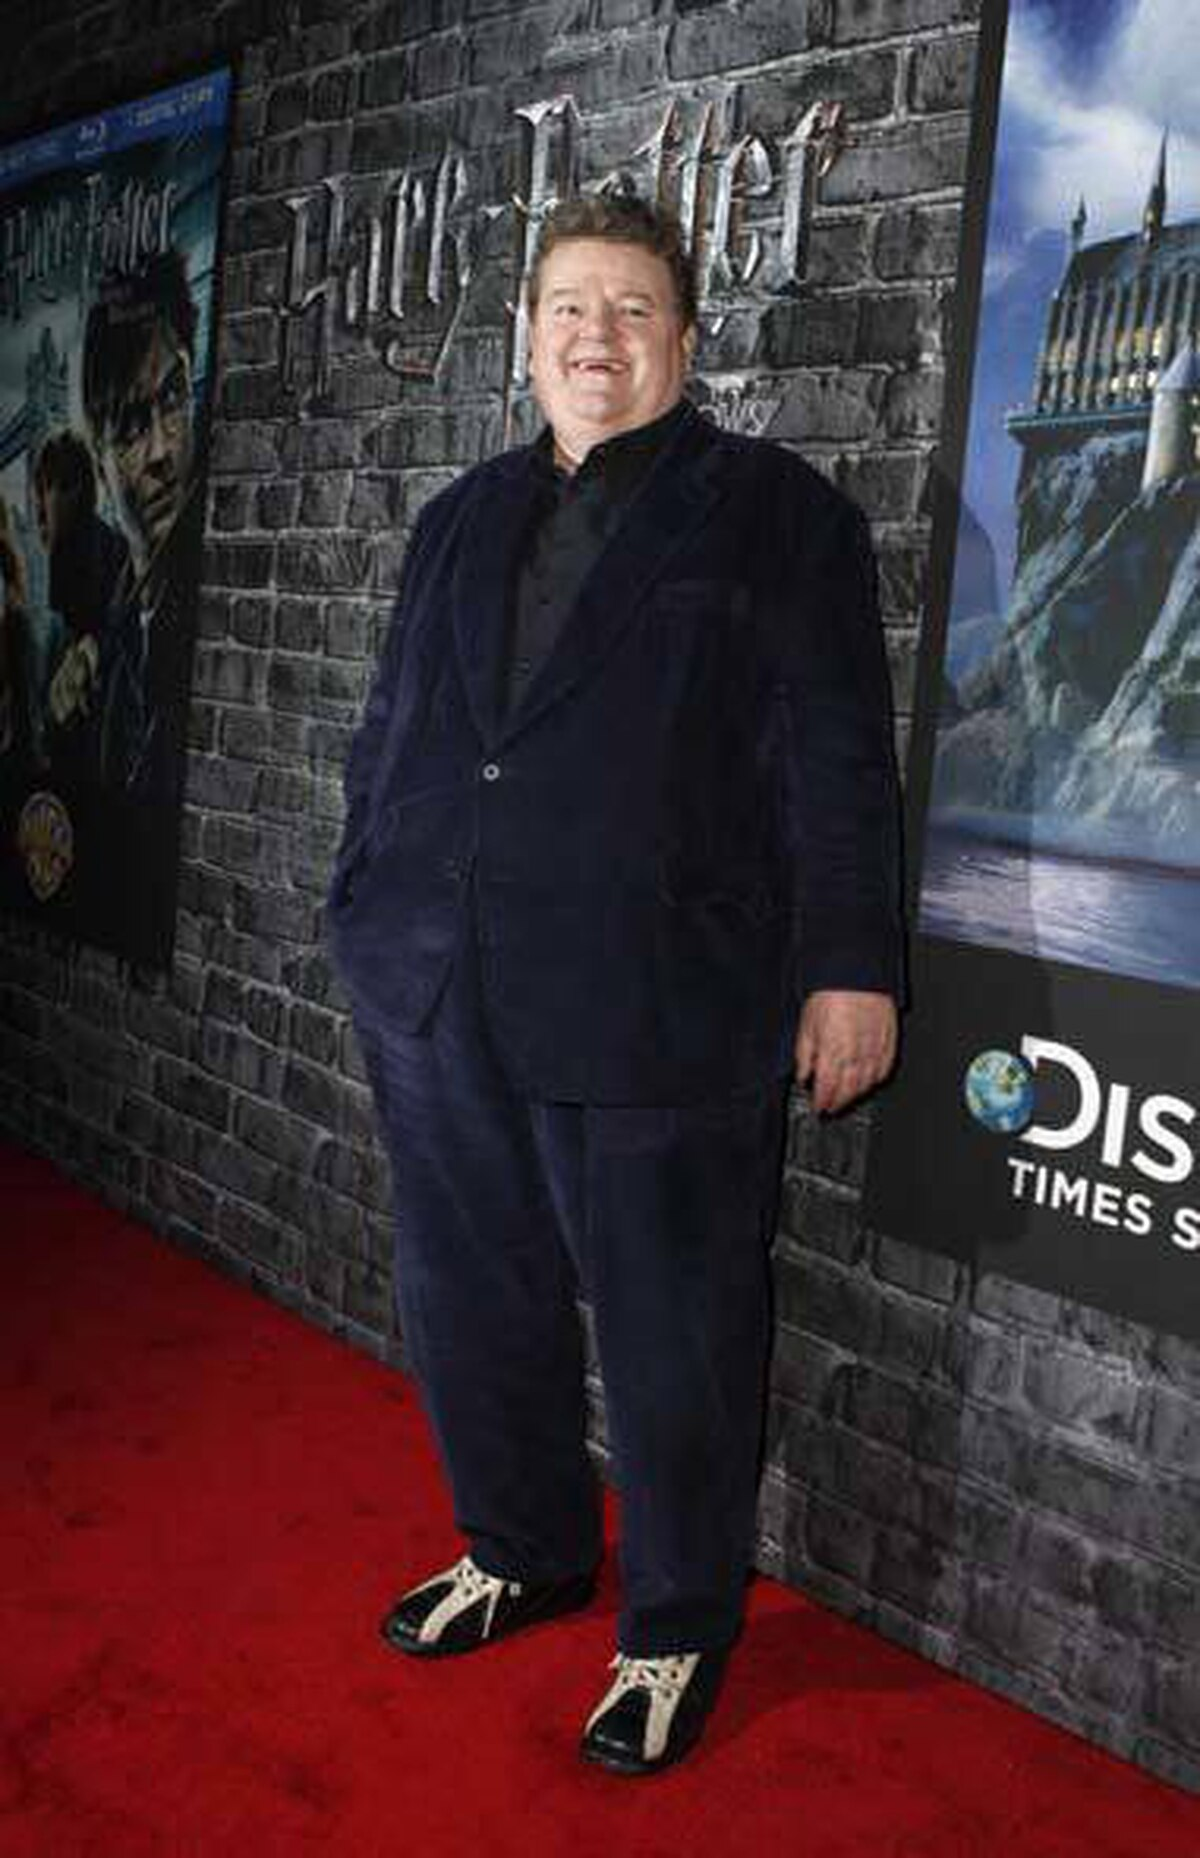 """Cast member Robbie Coltrane arrives at the launch of the """"Harry Potter and the Deathly Hallows - Part 1"""" movie in DVD and digital formats in New York on Monday."""